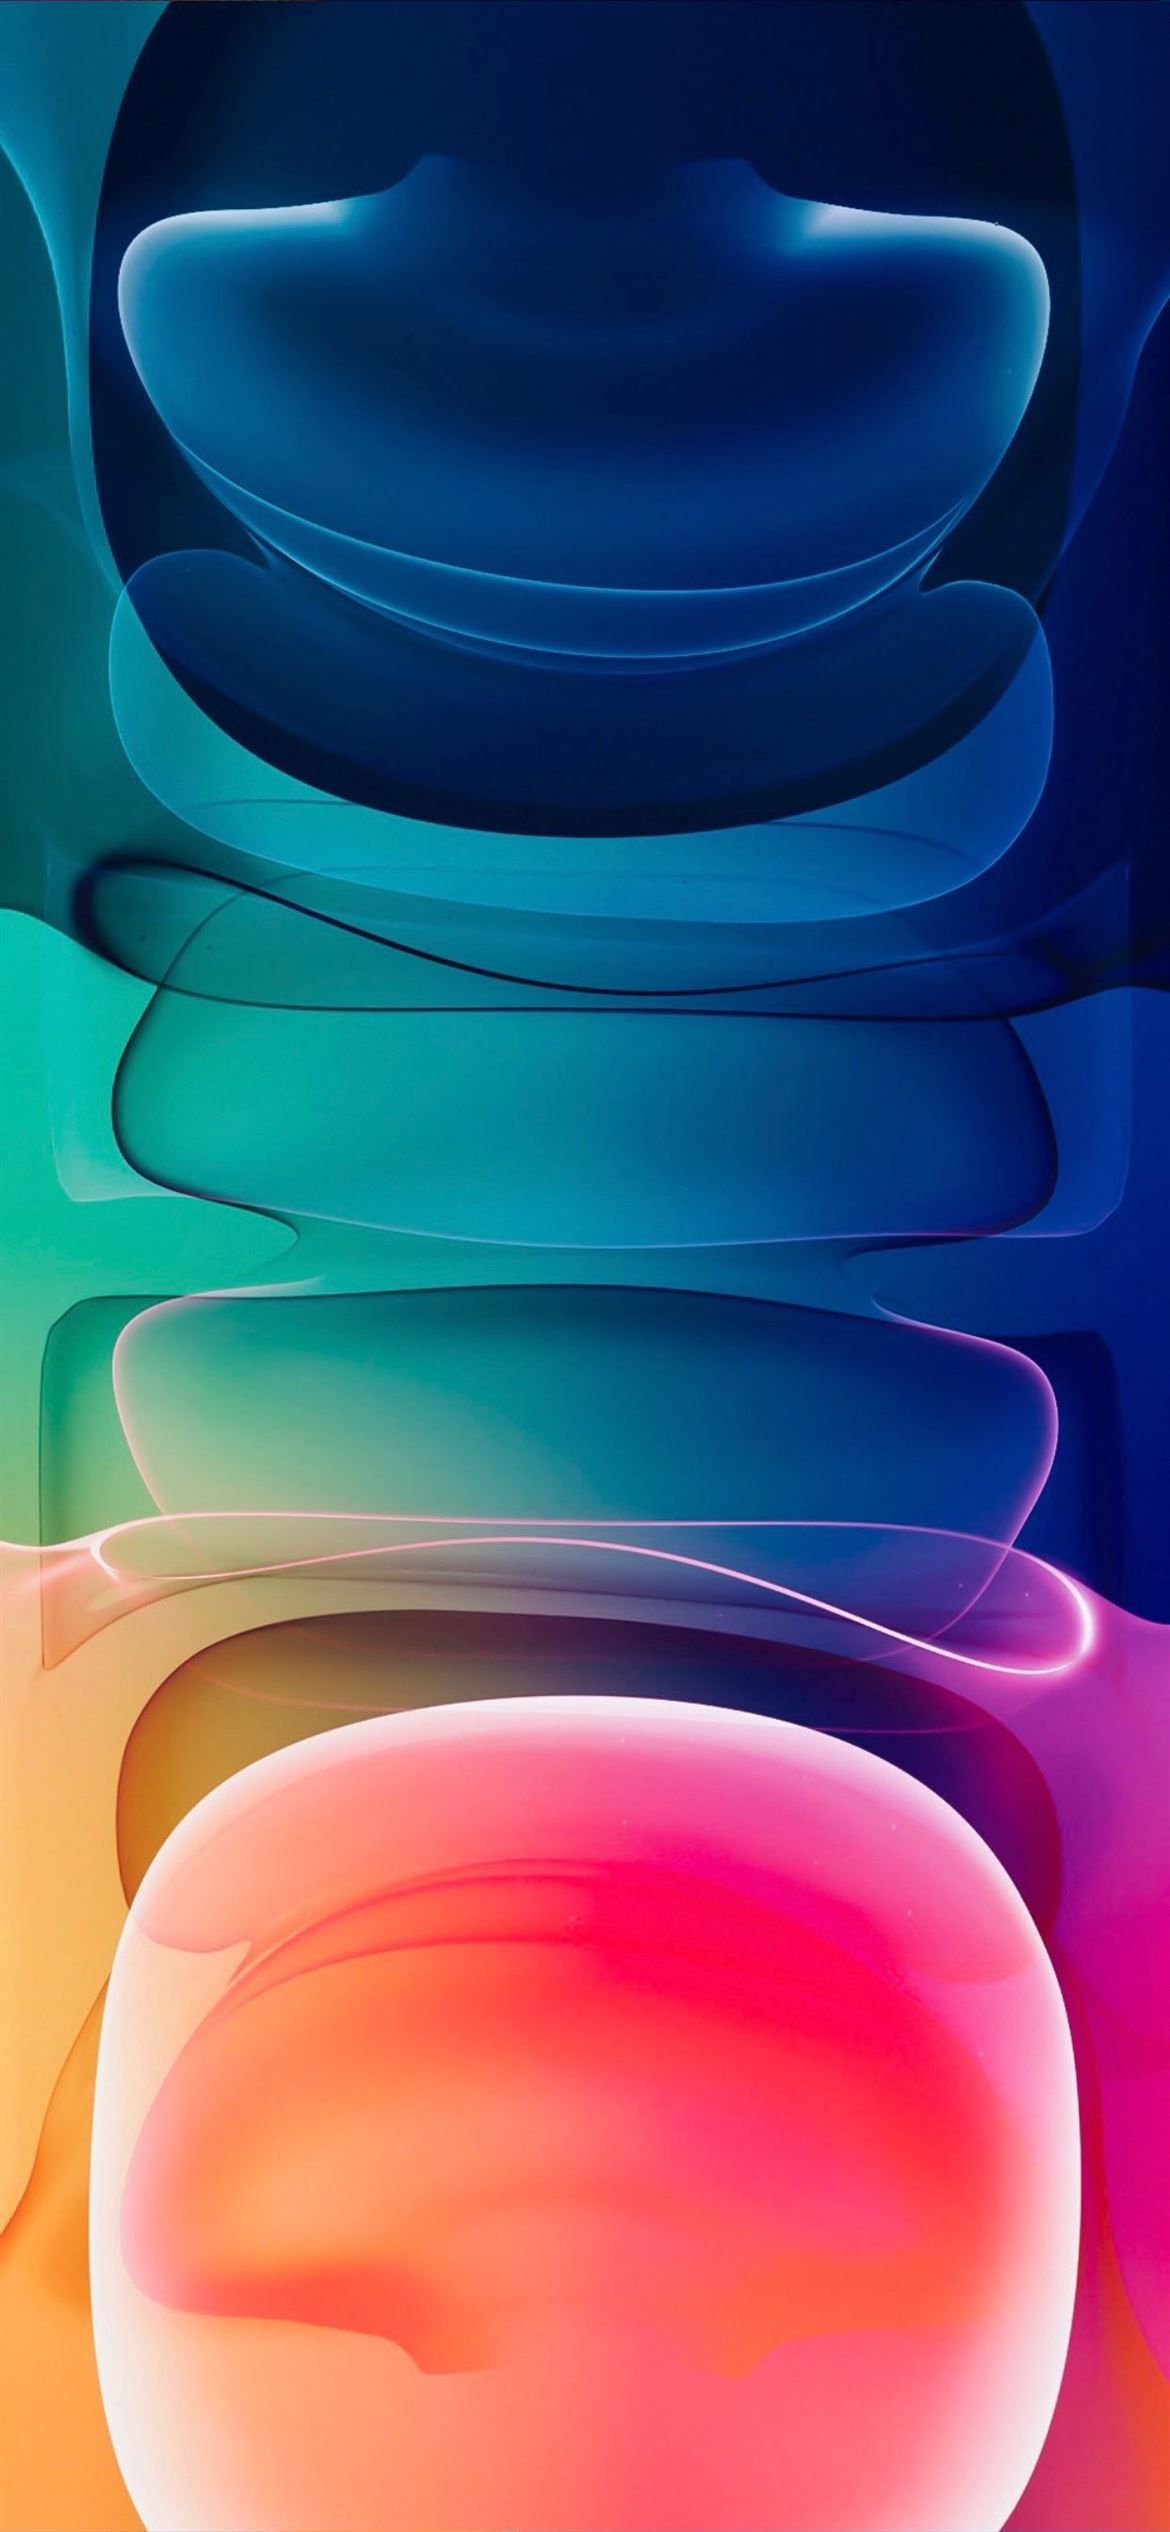 iPhone 12 Pro Wallpapers on WallpaperDog